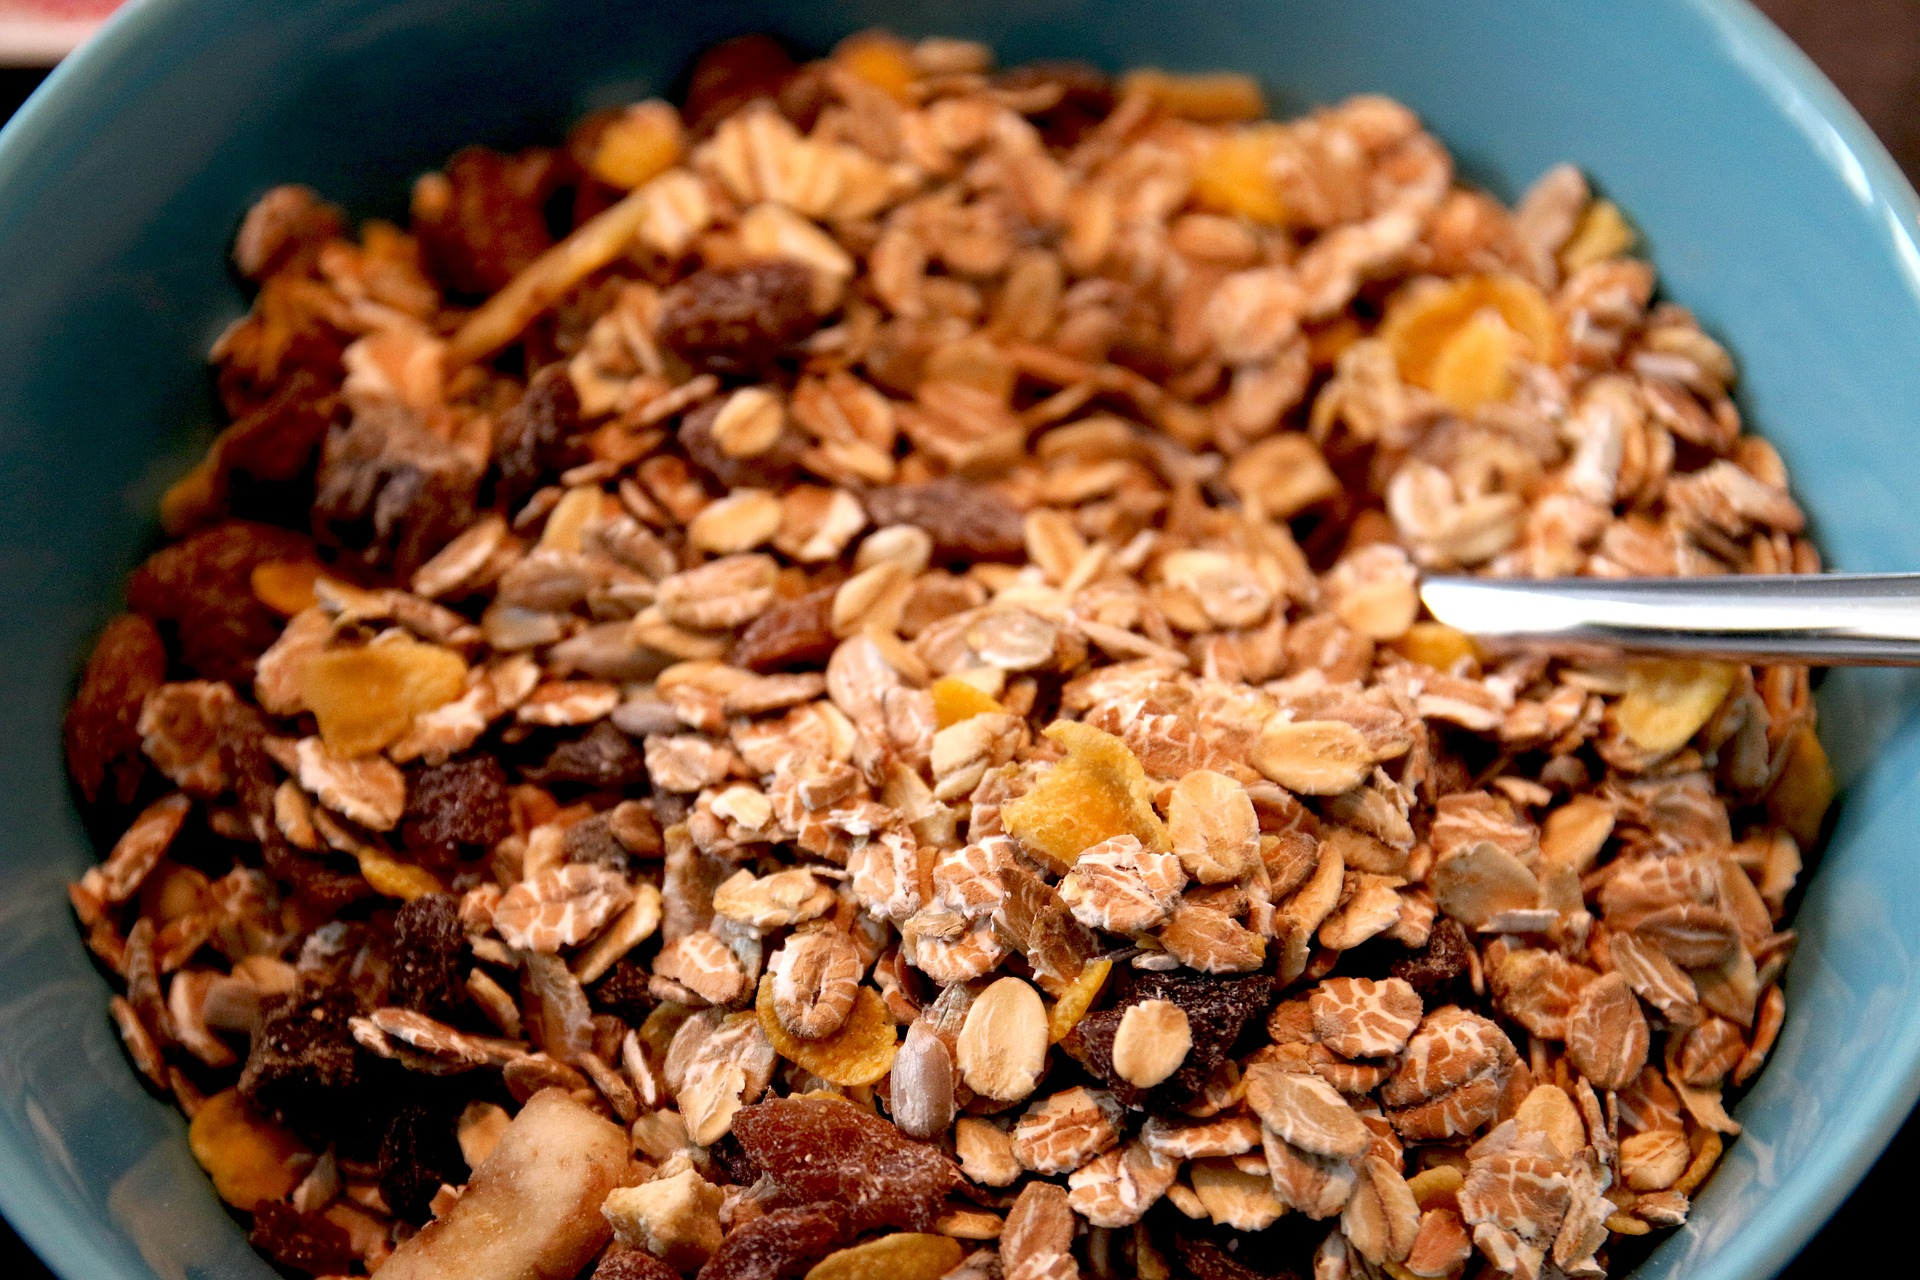 muesli-Image by moerschy from Pixabay